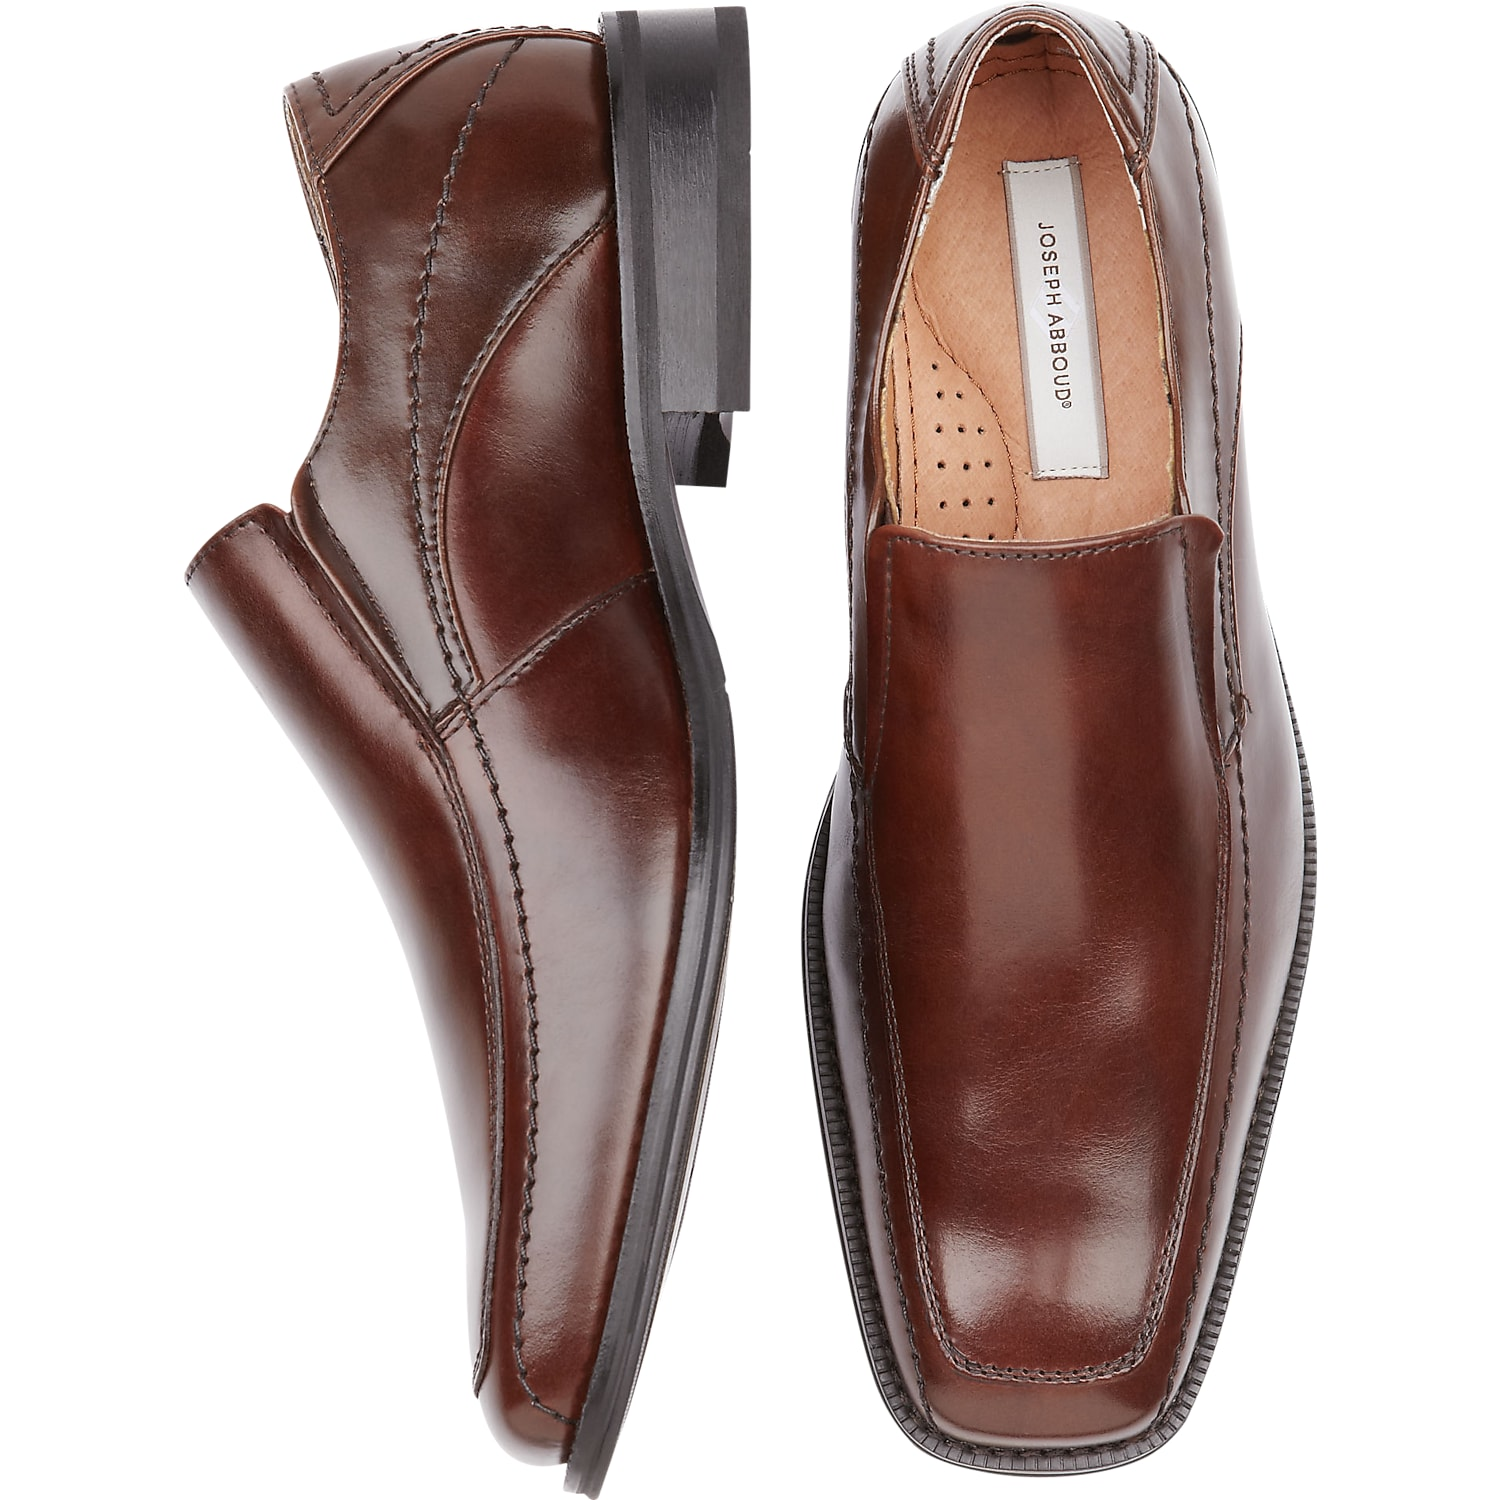 124a34e26df234 Mens Shoes - Joseph Abboud Brown Slip-On Shoes - Men s Wearhouse